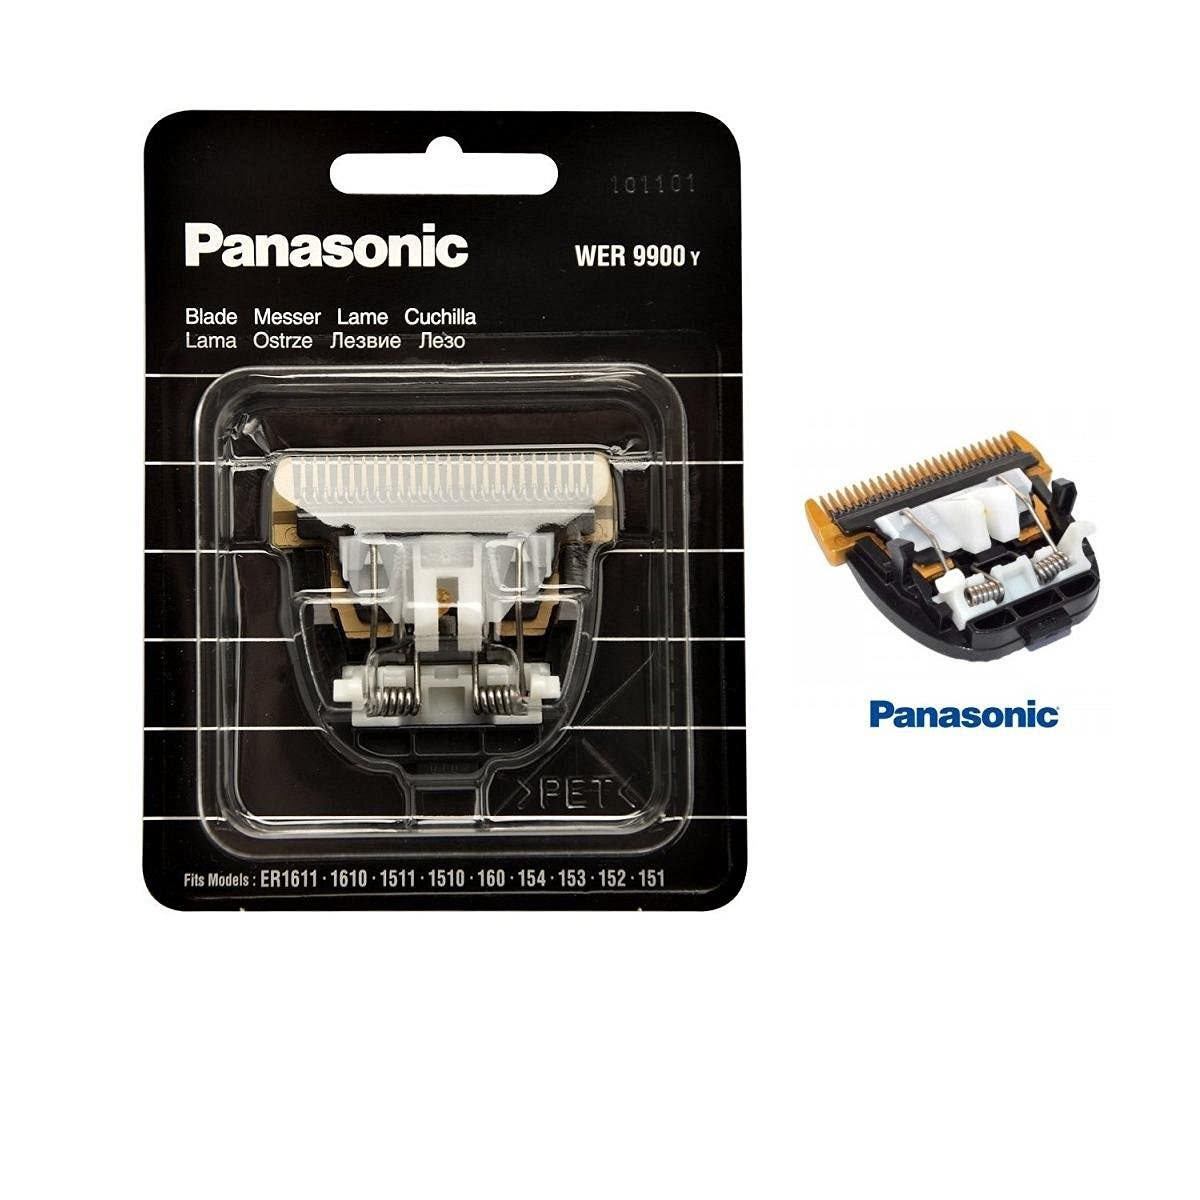 Replacement Clipper Blade WER 9900Y For Panasonic Clipper and Trimmer